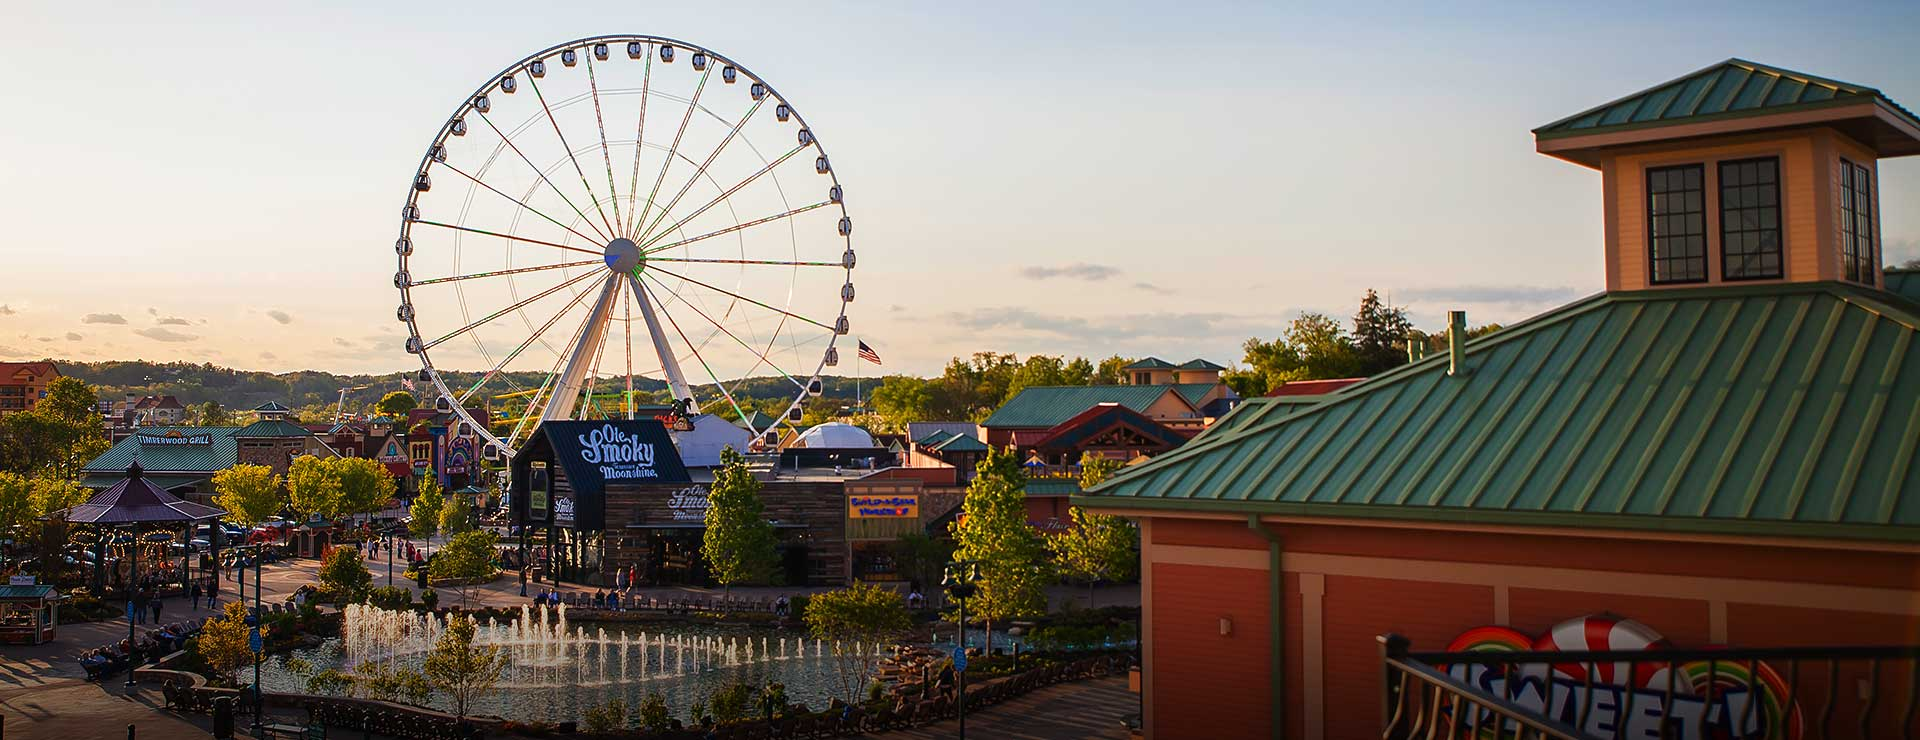 Things To Do In Pigeon Forge Tn.